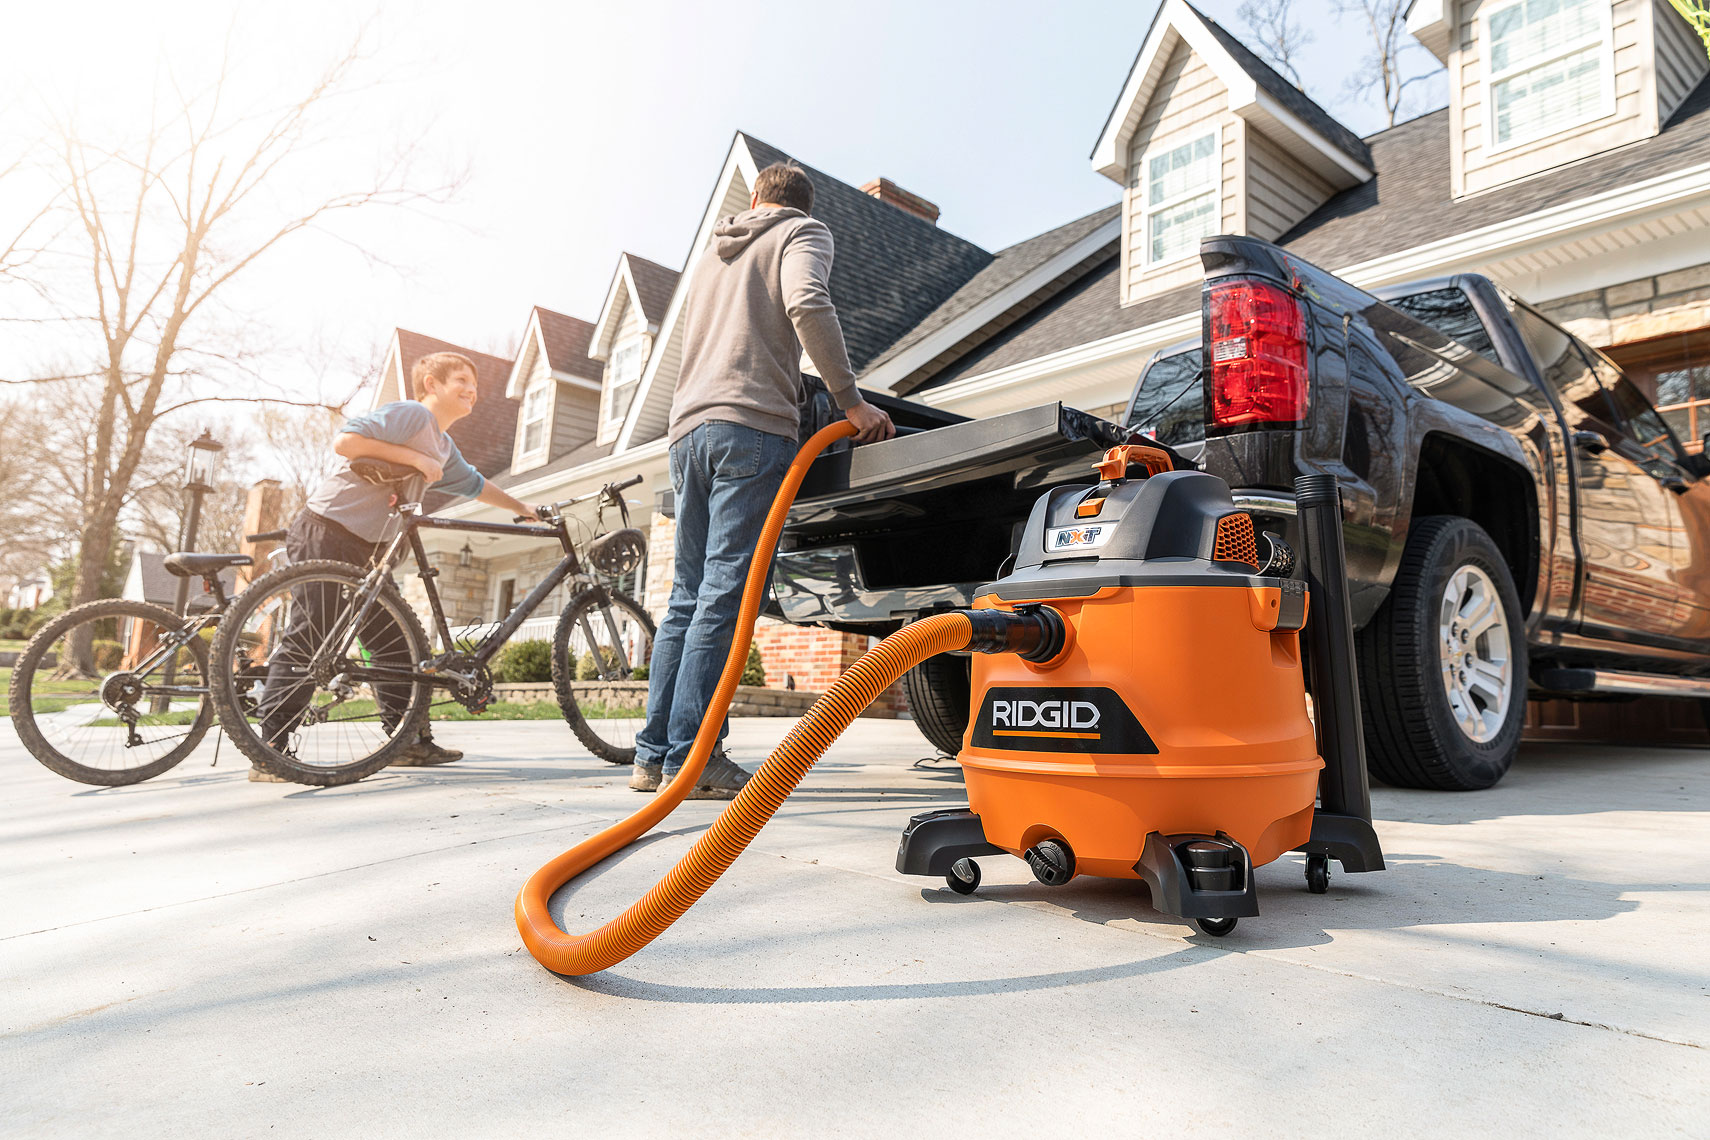 RIDGID HD1401 Wet/Dry Vacuum | John Fedele Product Photography